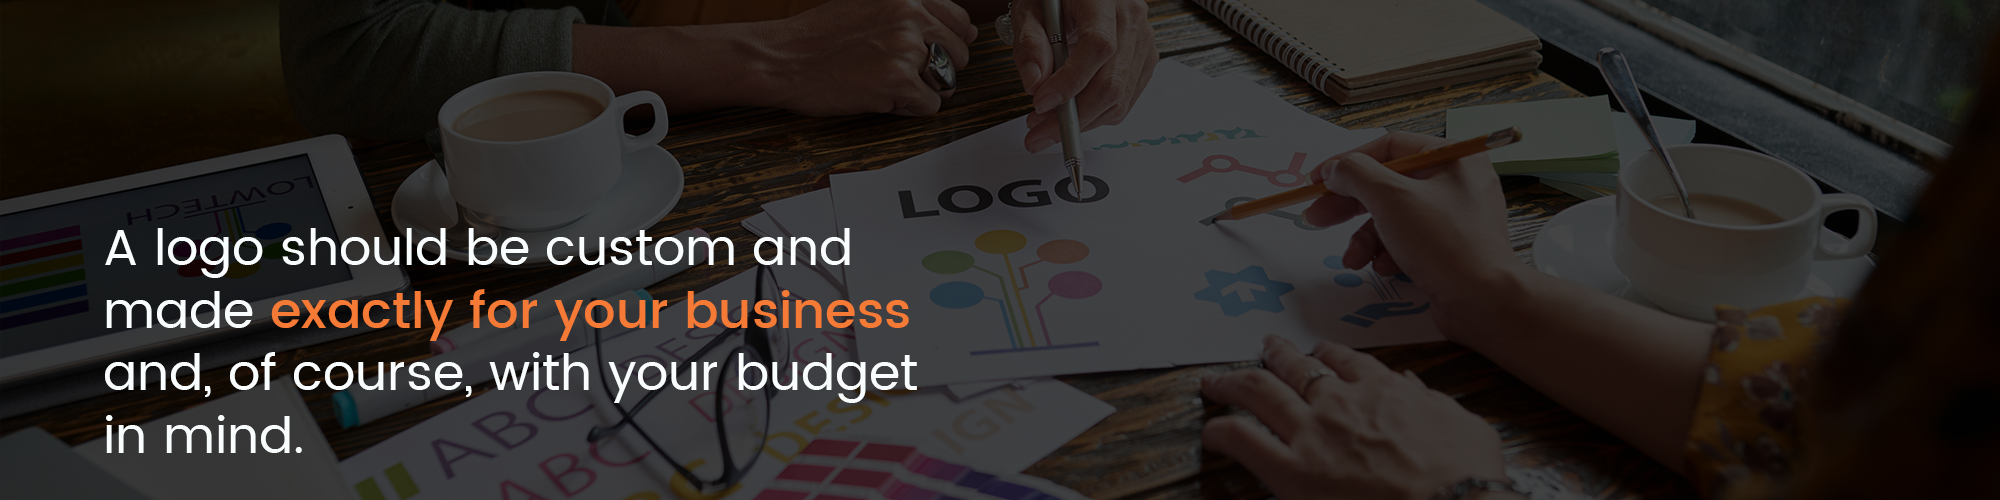 A logo should be custom and made exactly for your business and, of course, with your budget in mind.